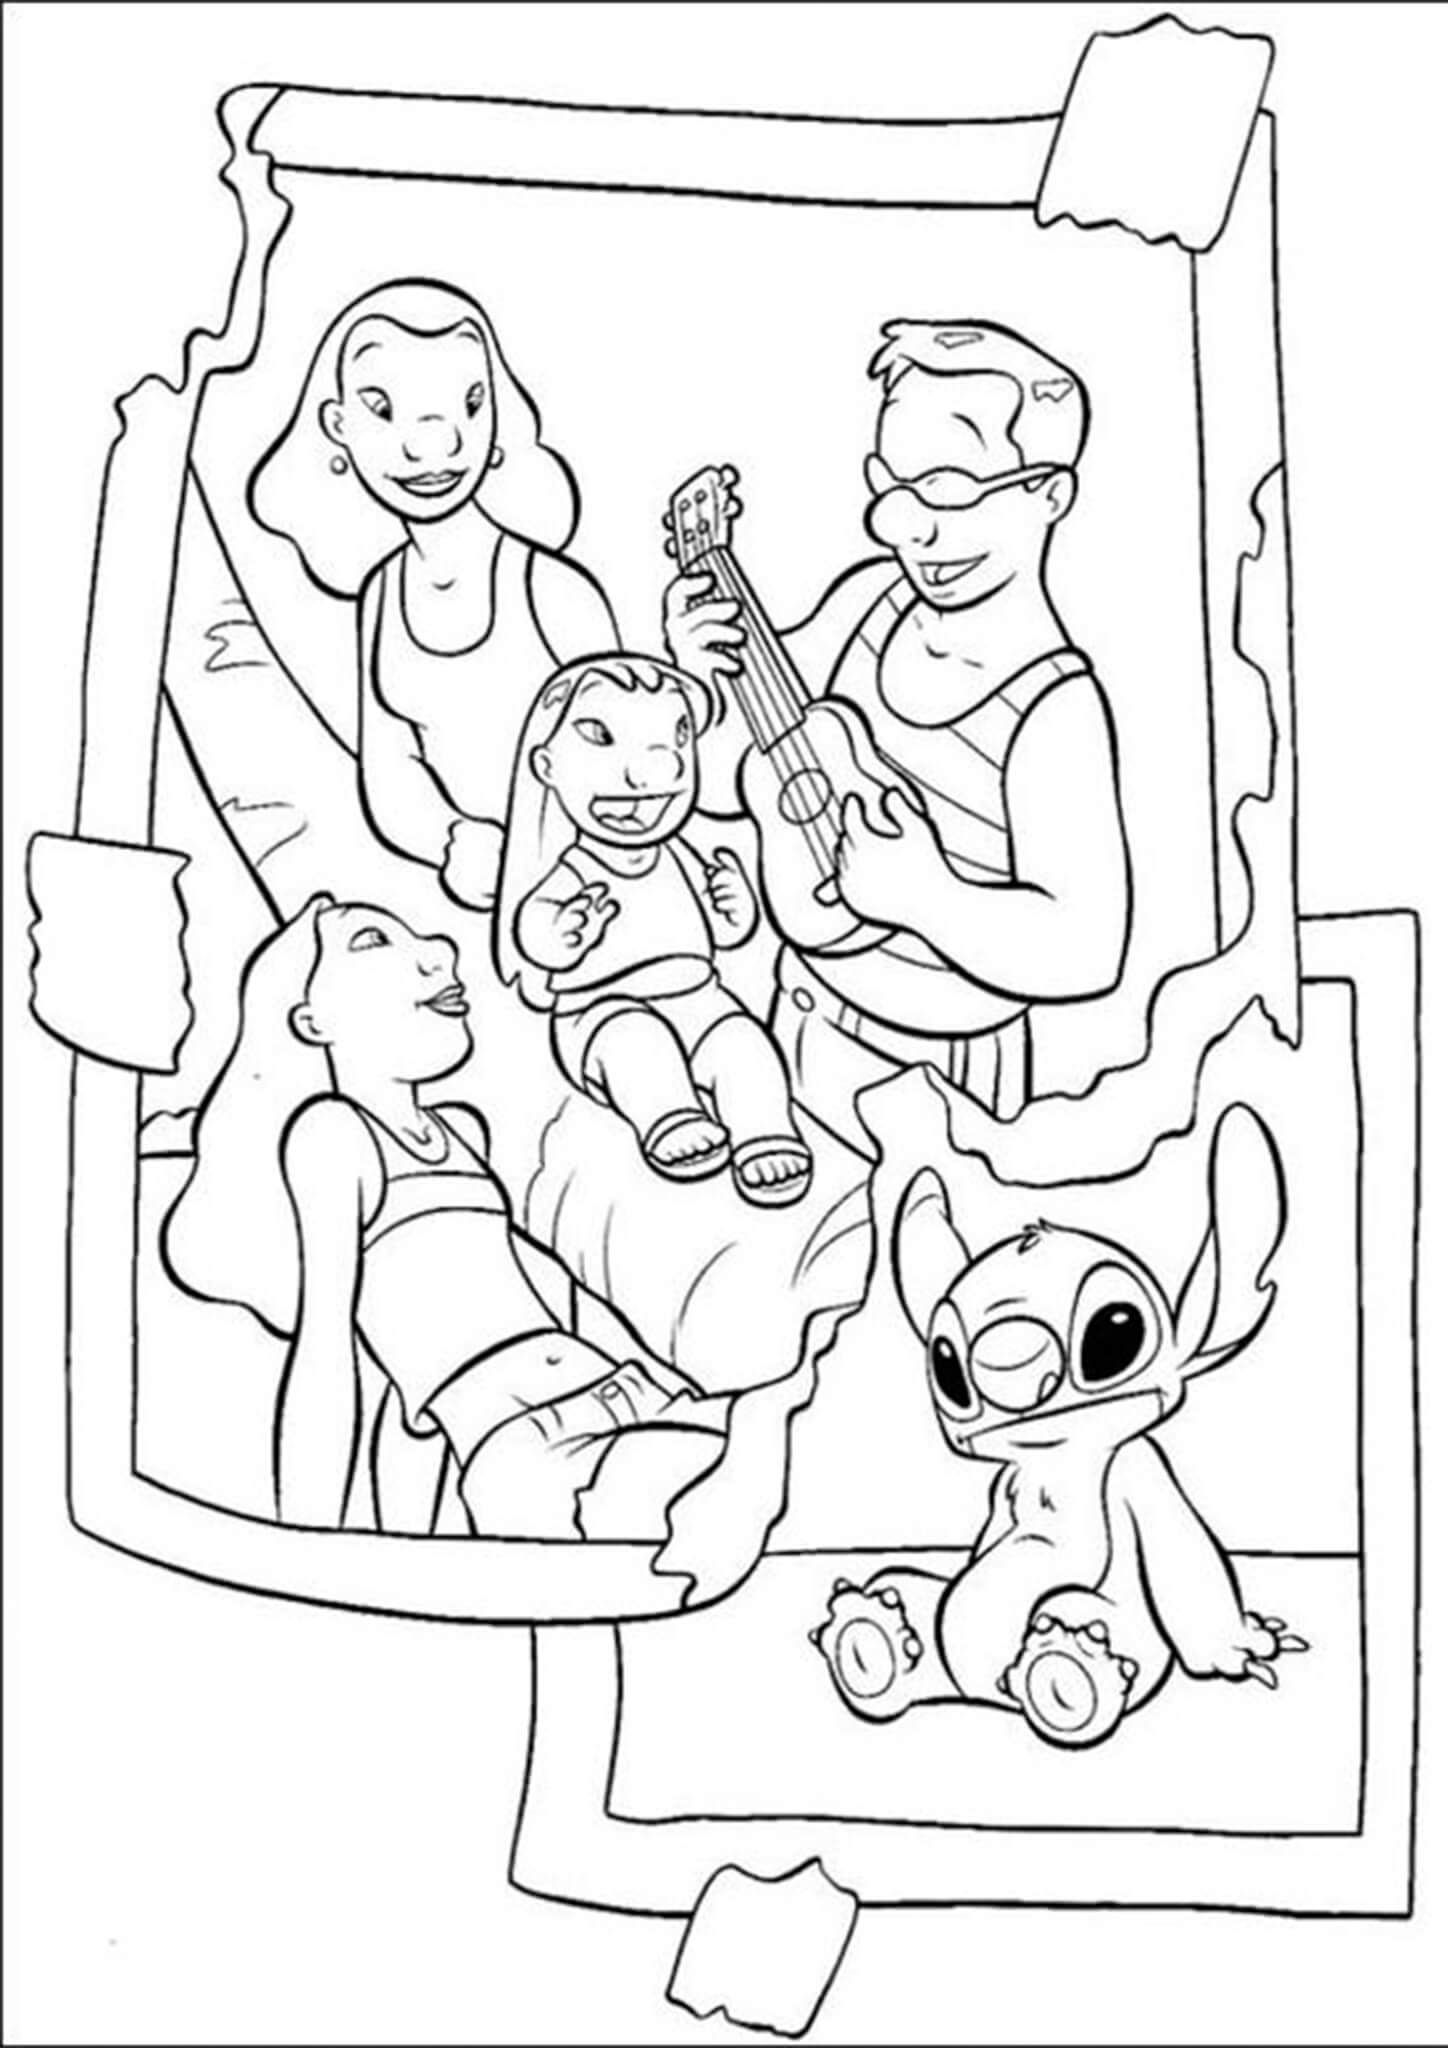 Free Easy To Print Stitch Coloring Pages In 2021 Stitch Coloring Pages Family Coloring Pages Disney Coloring Pages